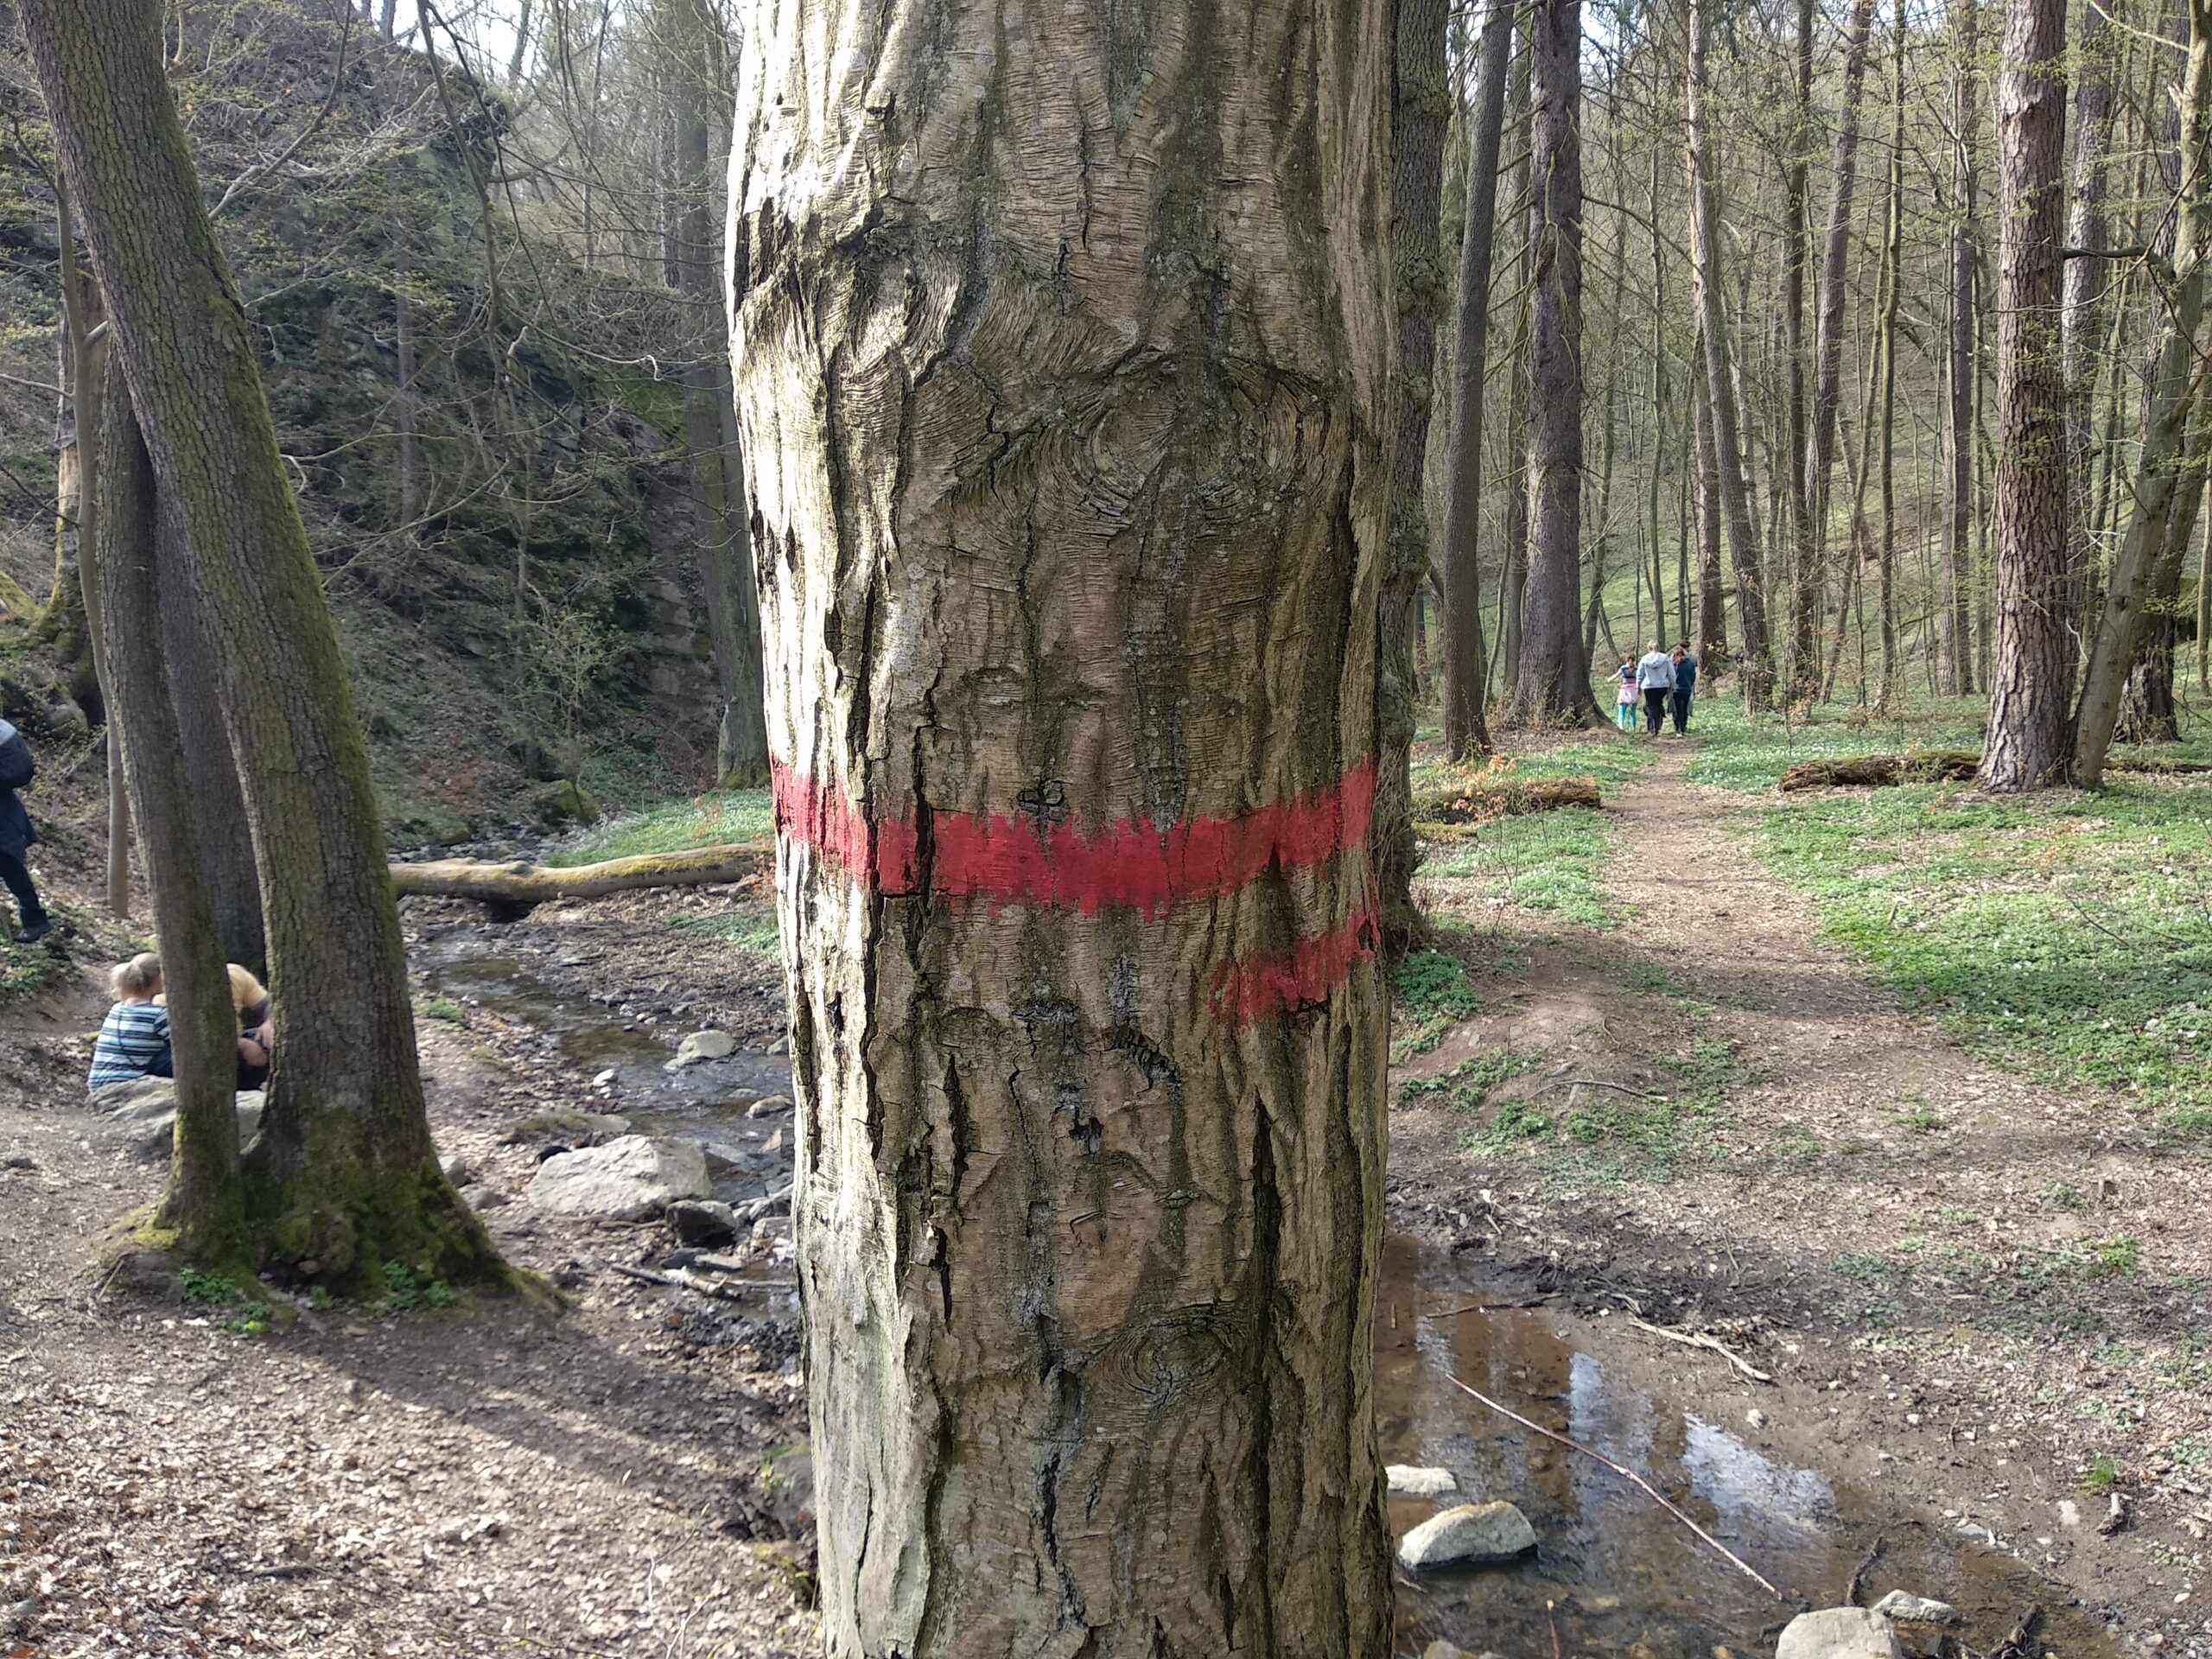 Image shows tree marked with red horizontal stripe